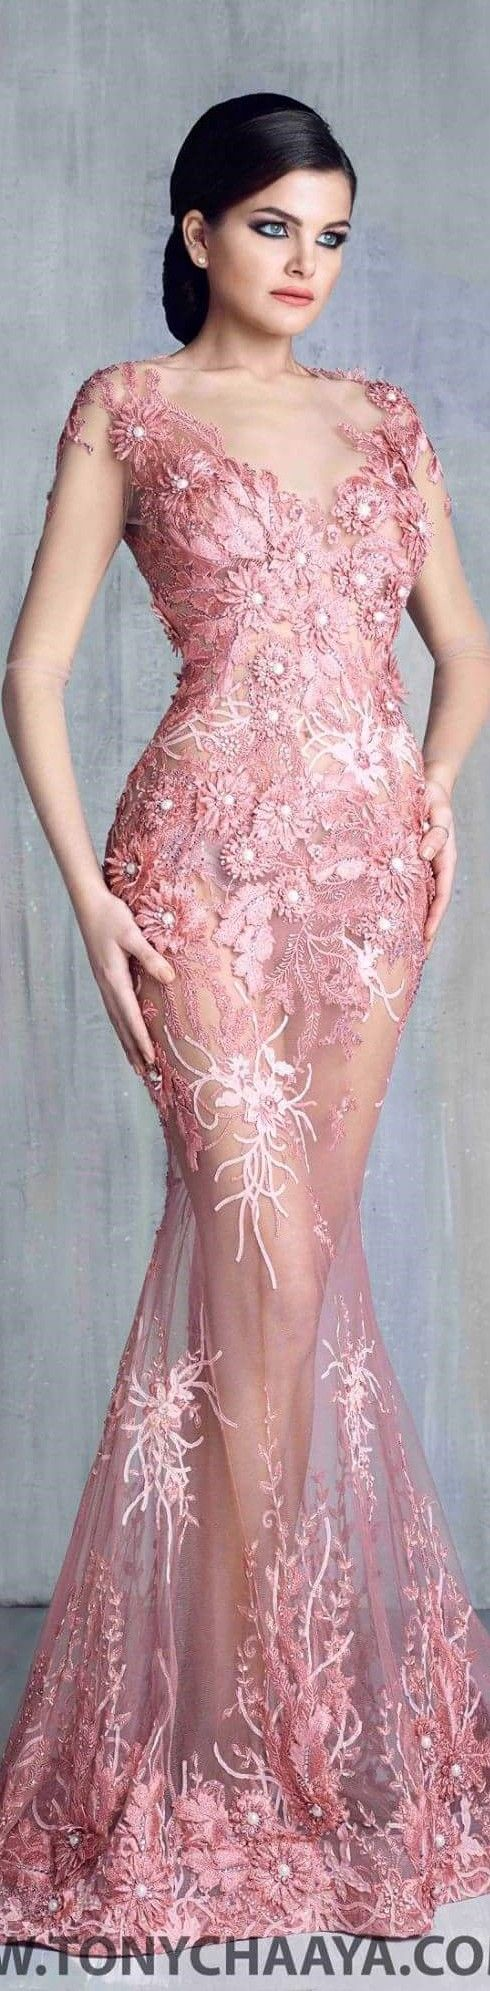 249 best vestidos images on Pinterest | Casual gowns, Frock patterns ...